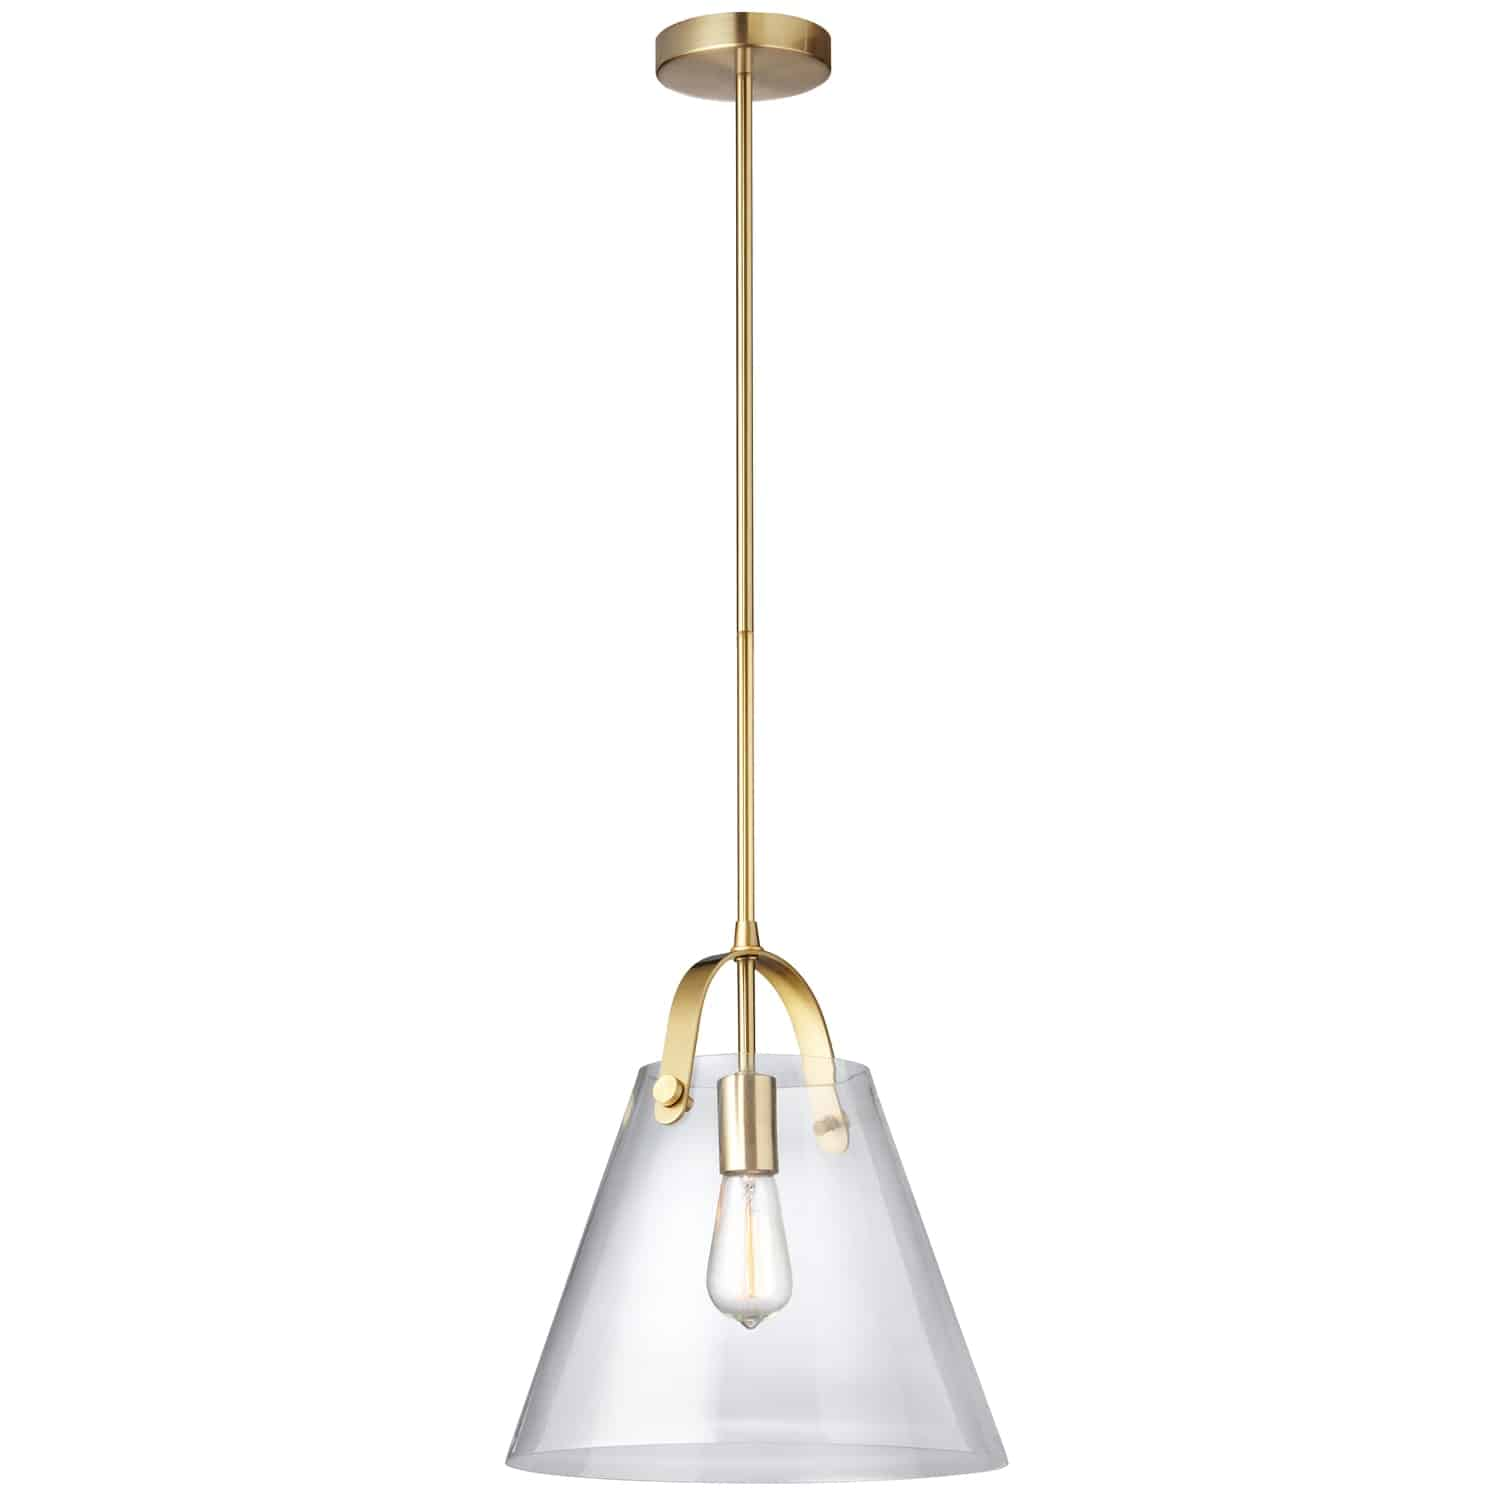 1 Light Incandescent Pendant Aged Brass Finish with Clear Glass